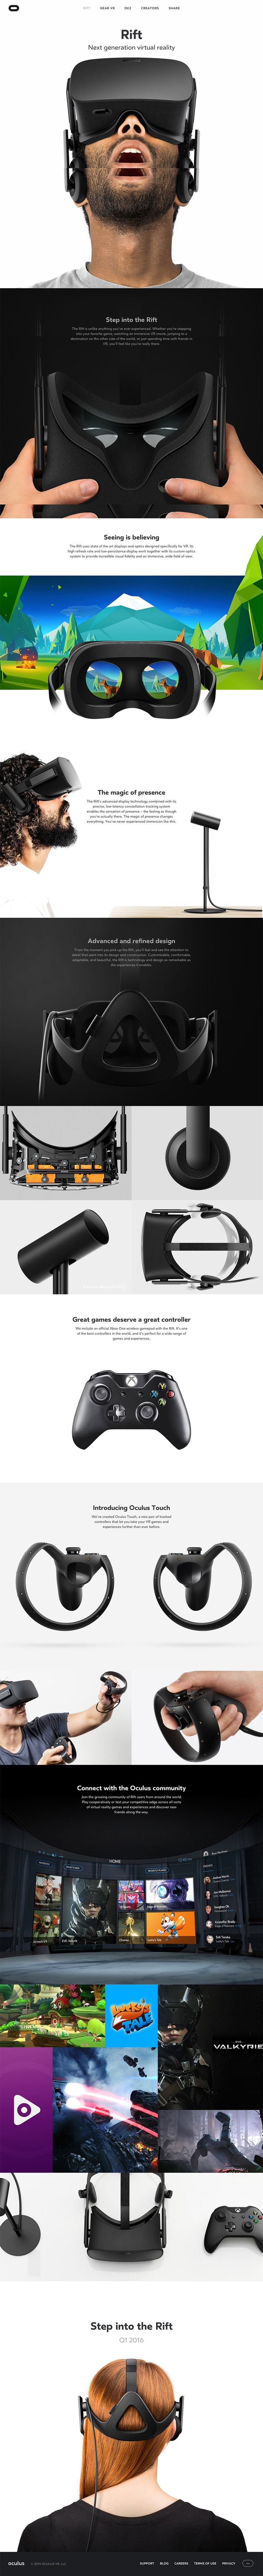 Question 3: what is the product currently being used for? Mainly gaming on PC's (now available on Xbox One) where virtual reality is now possible  #oculusrift #virtualreality #newtech